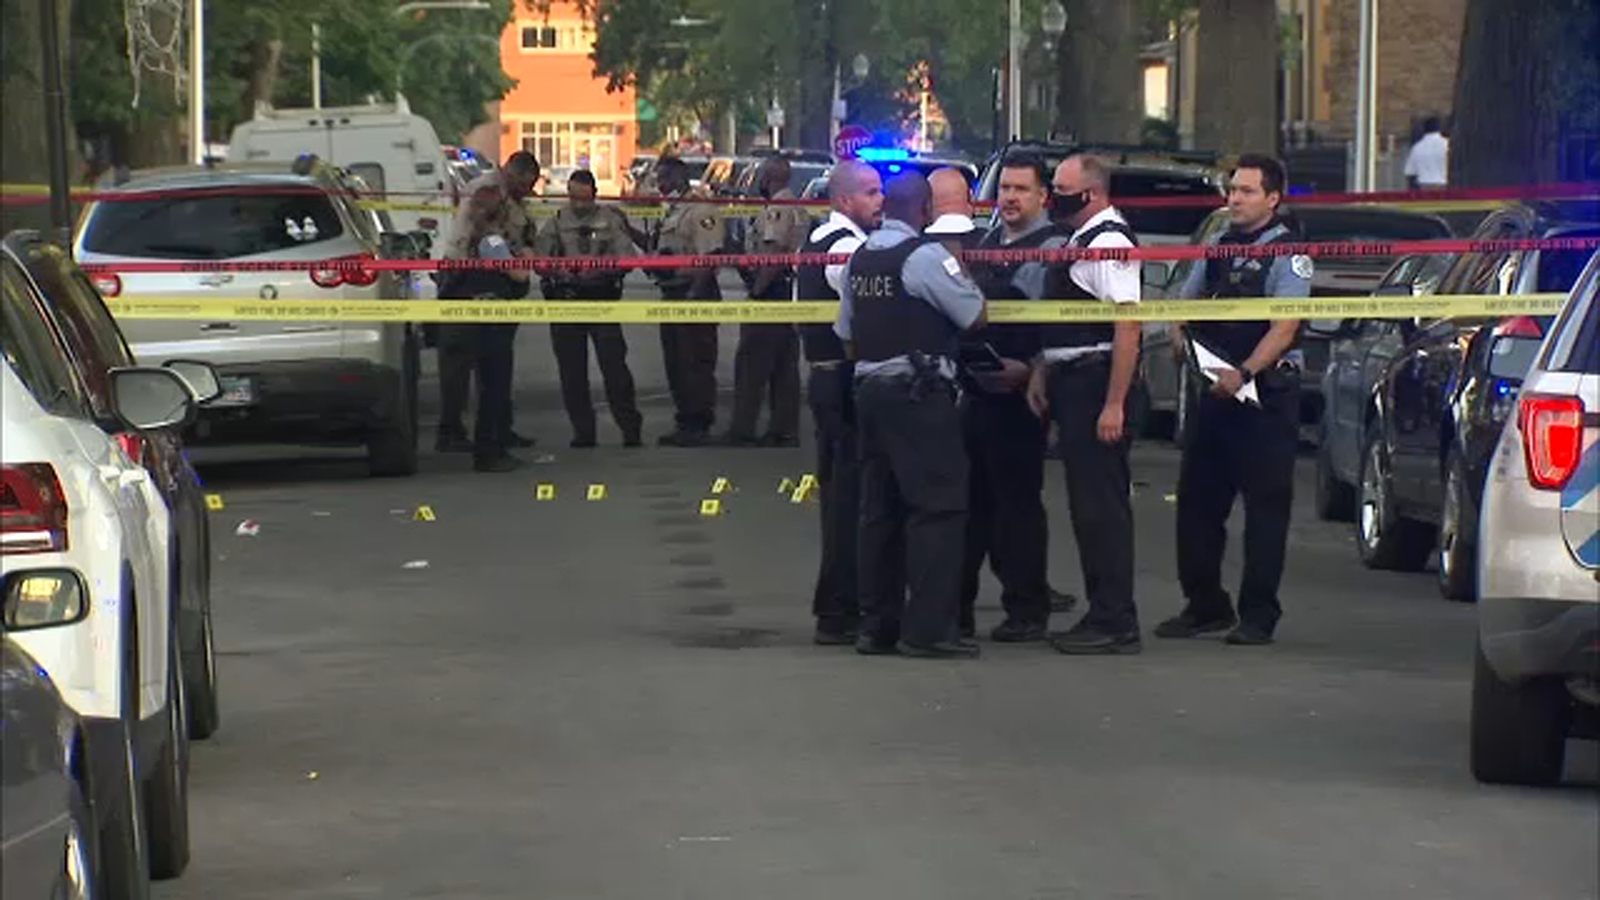 Chicago July 4th: At least 22 shot, 4 fatally, in weekend violence so far, police say